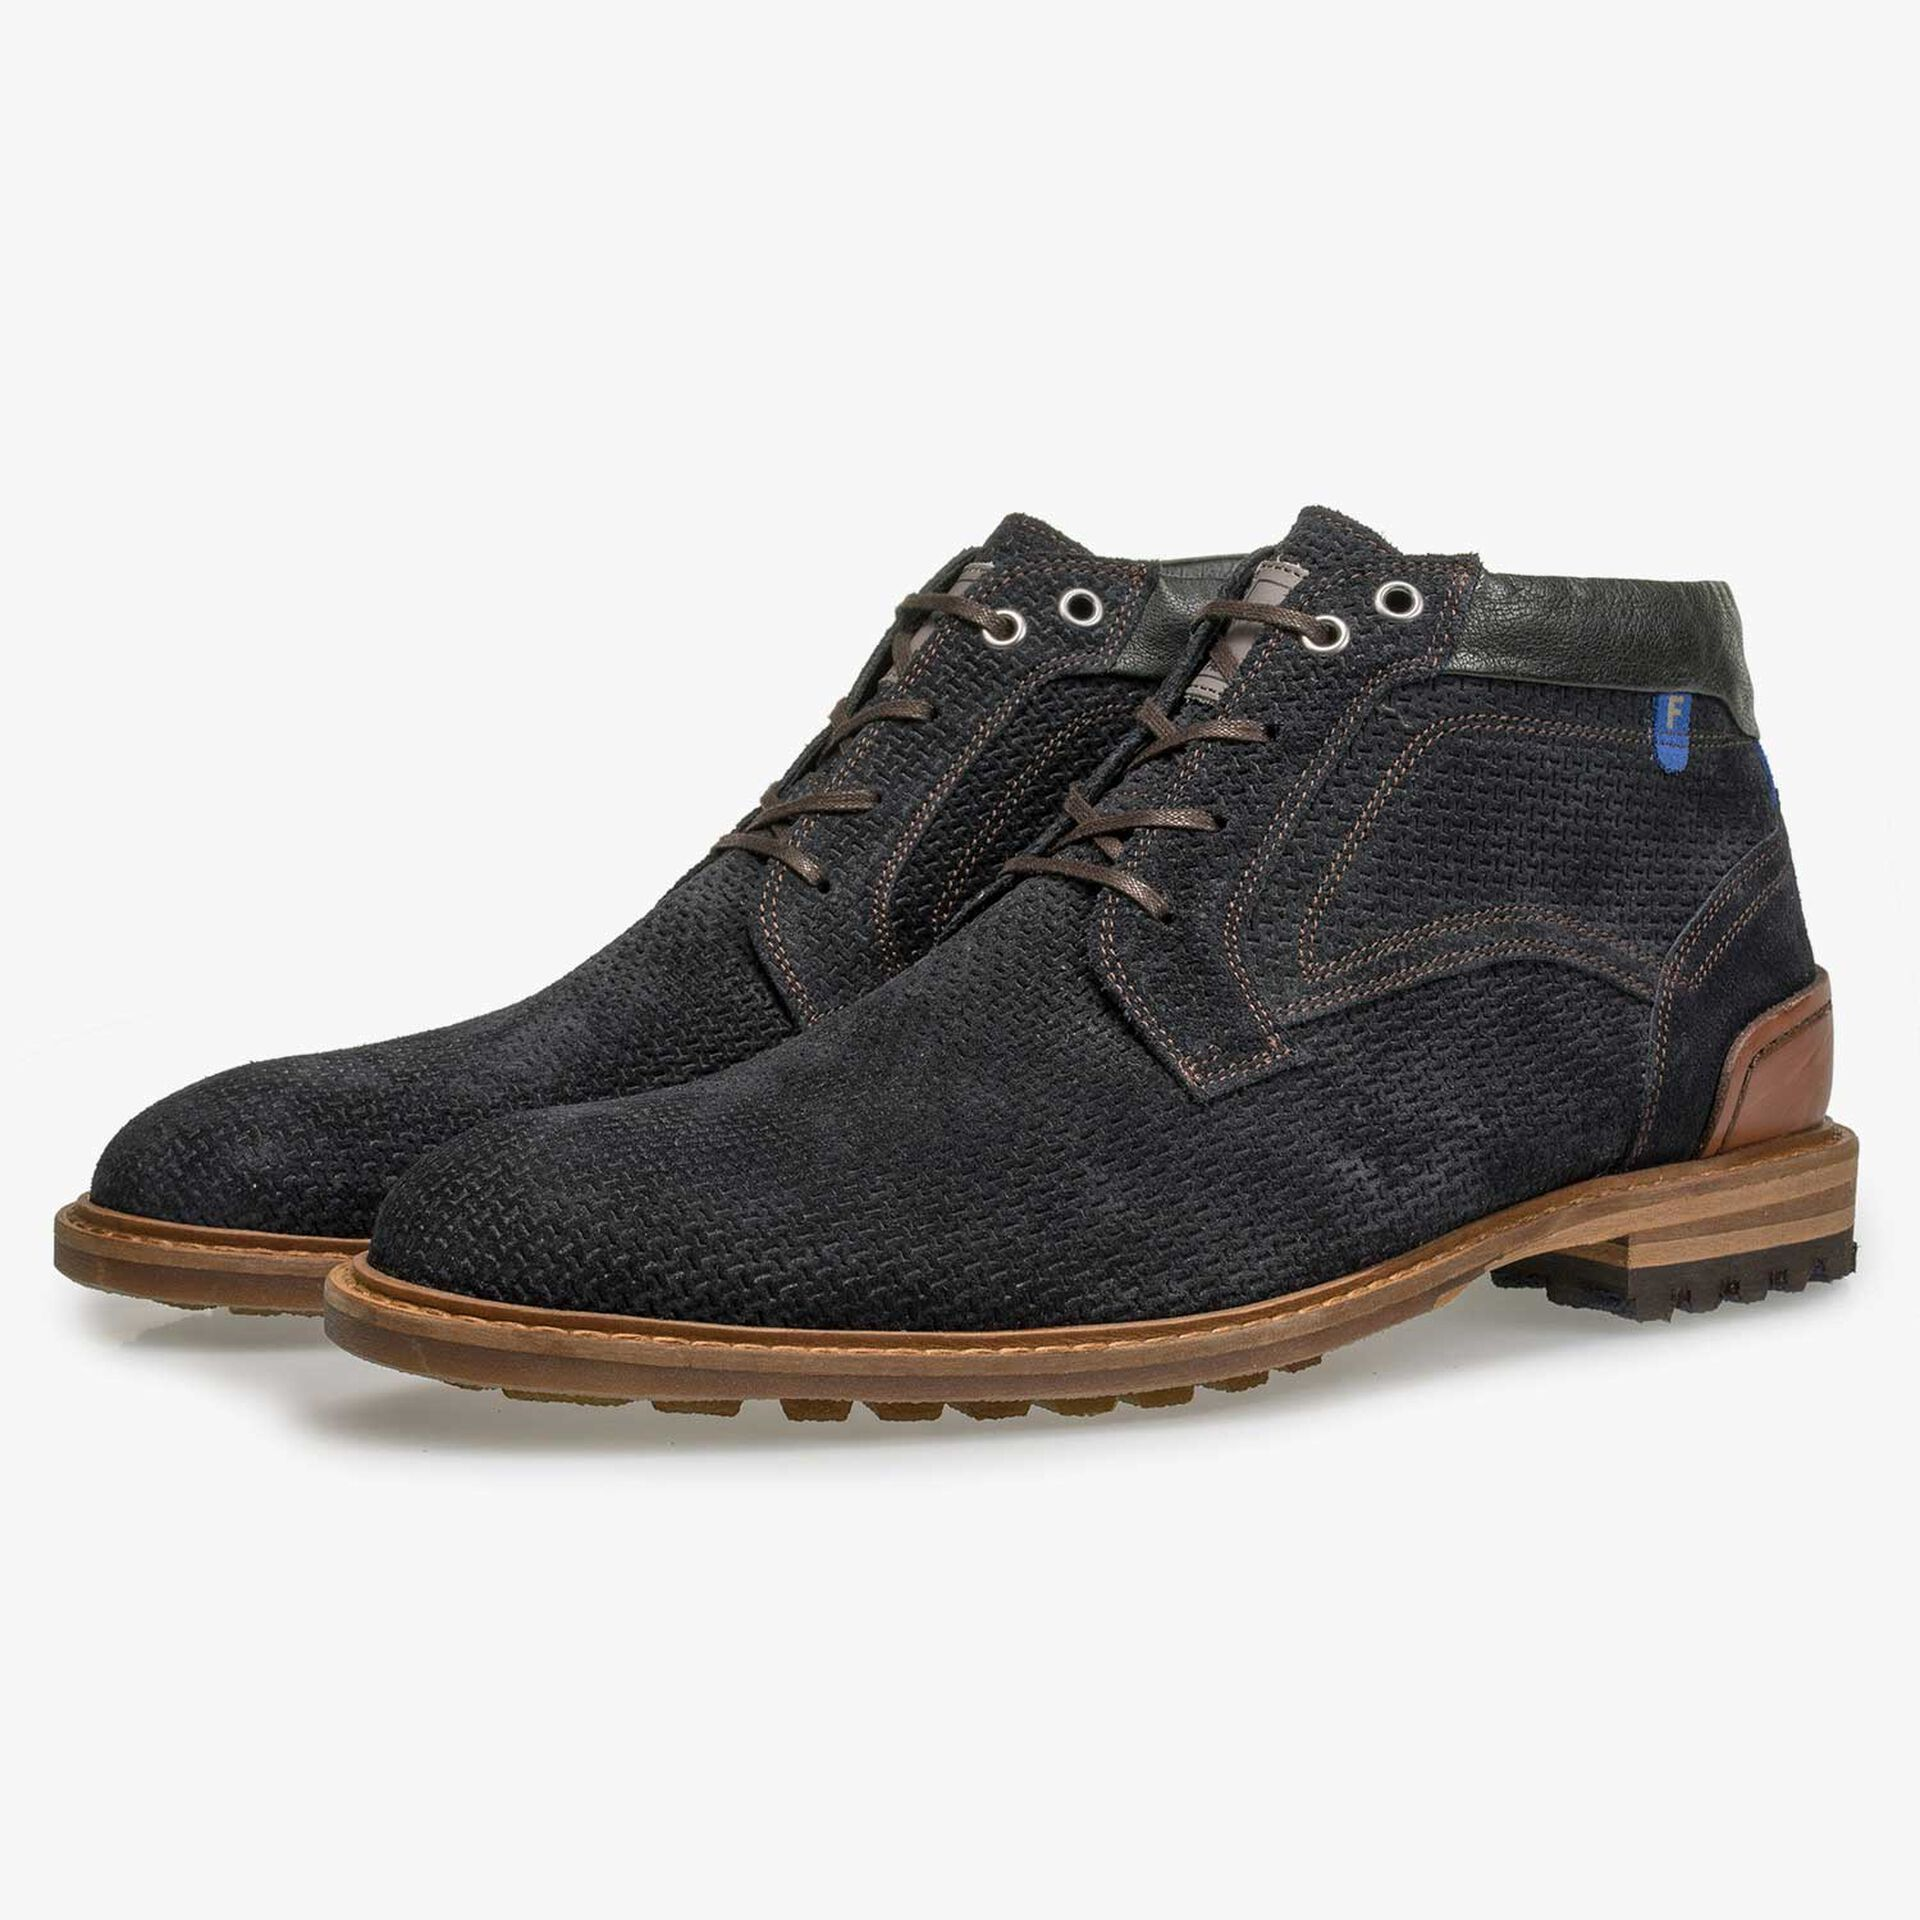 Dark blue suede leather lace boot with structural pattern